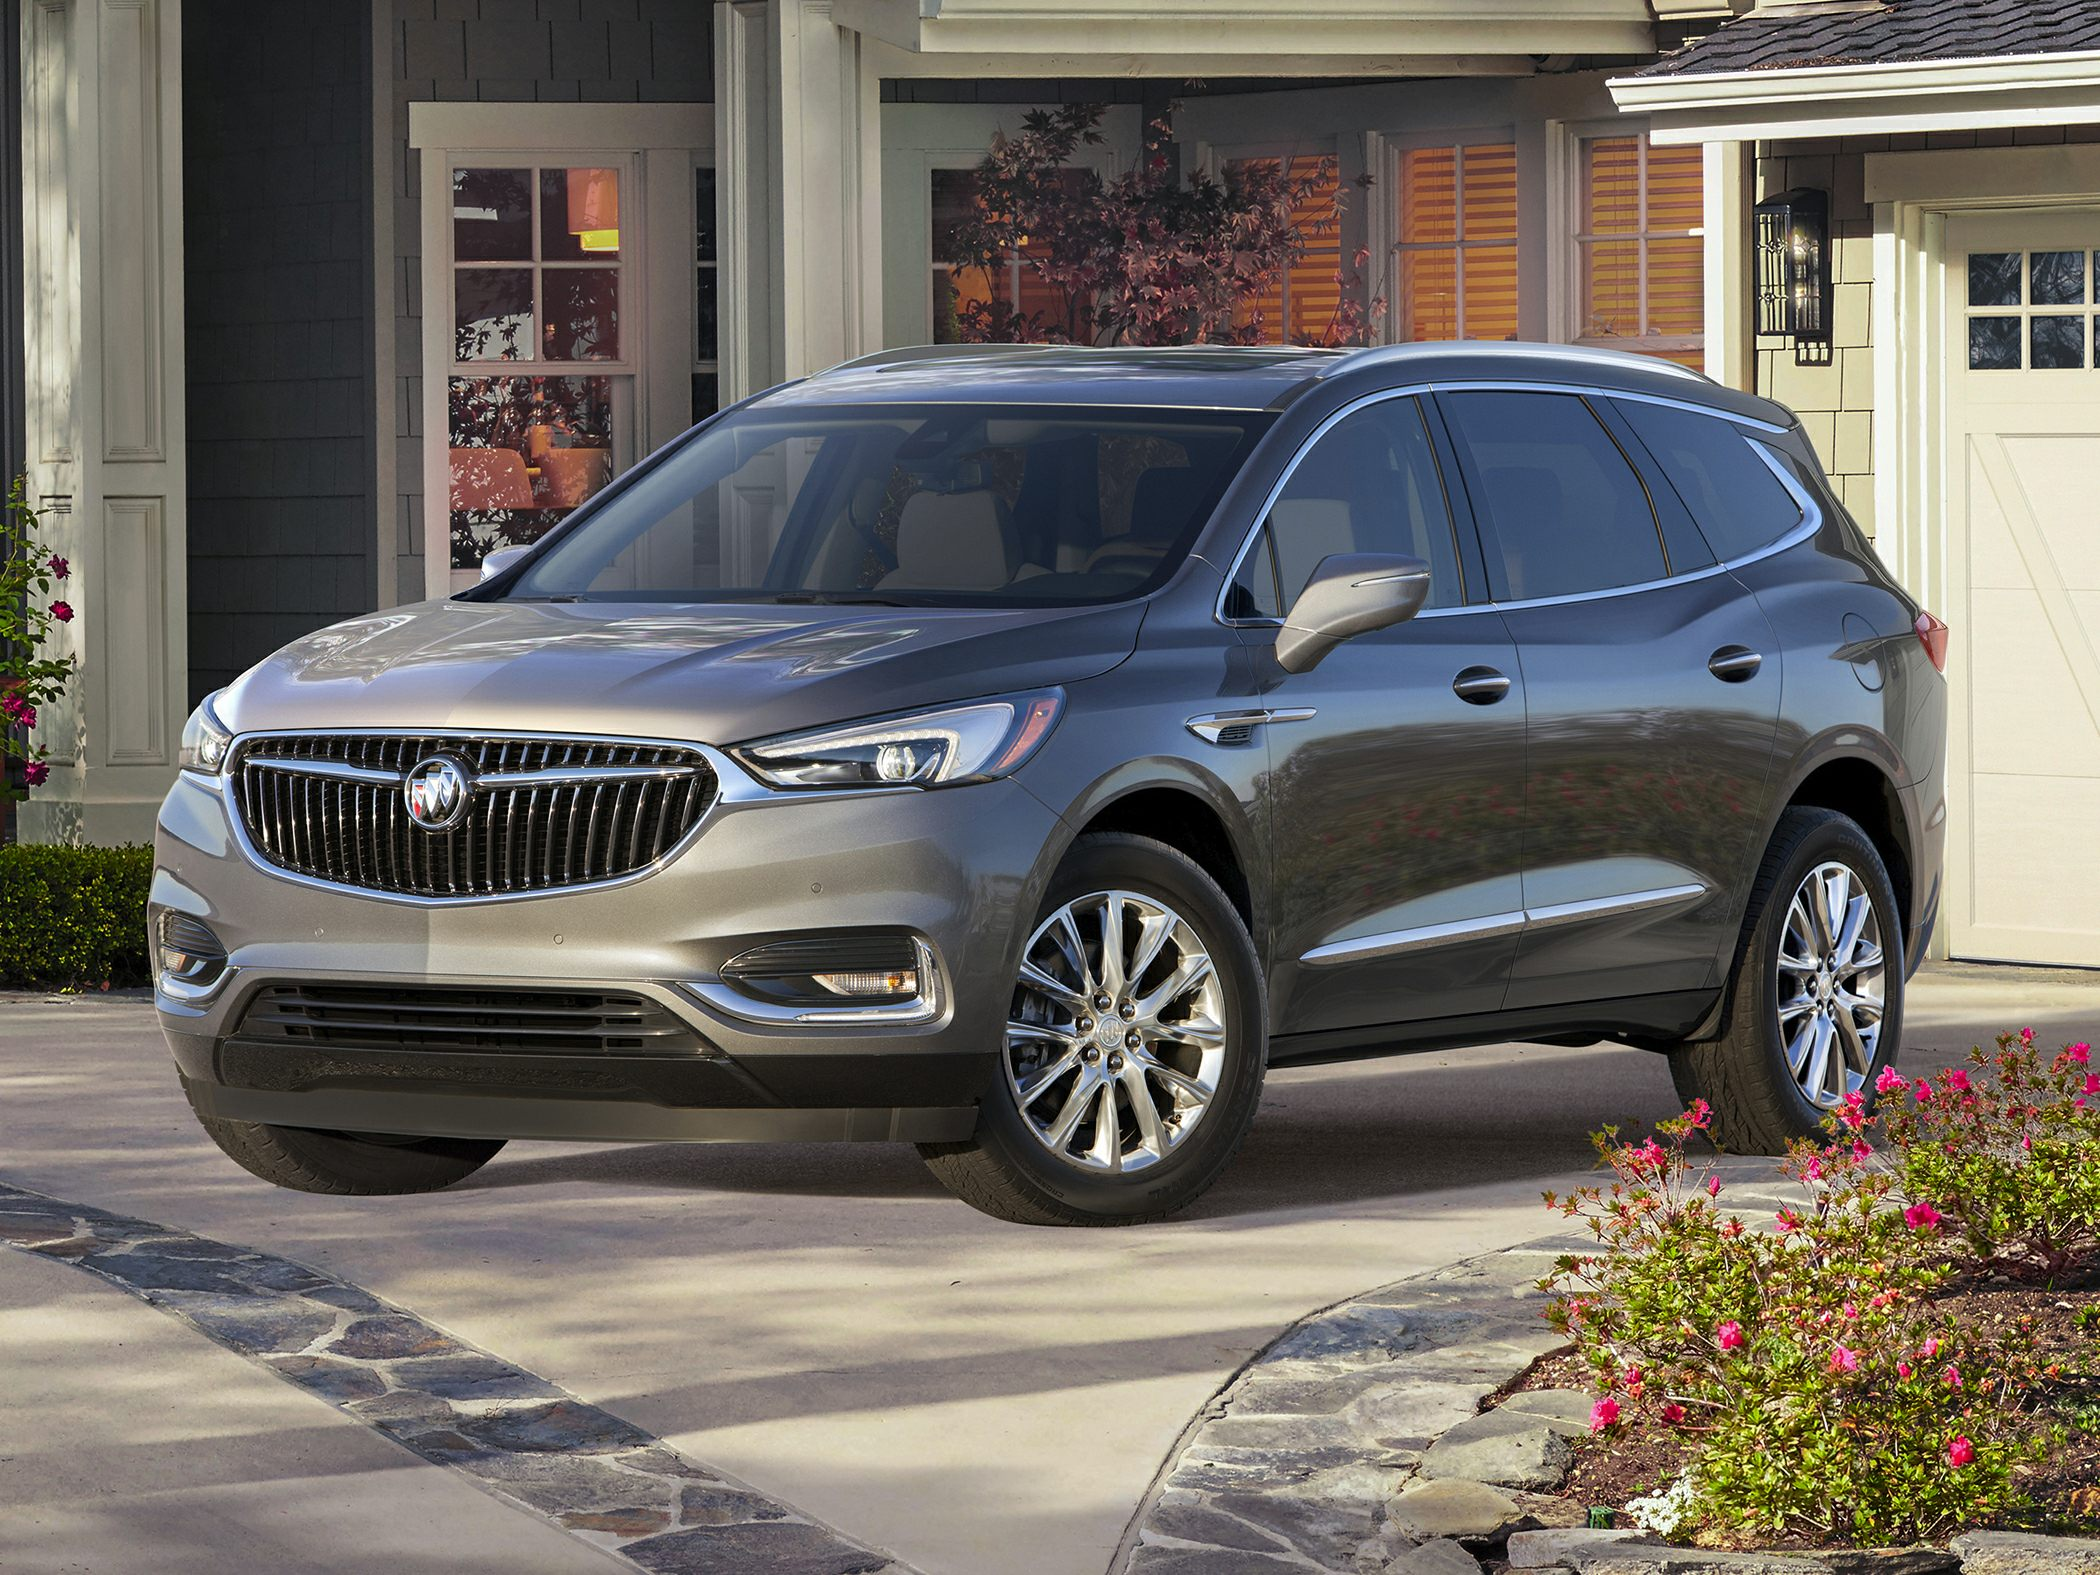 new lease denver a and web is car suv dealer encore vehicle buick image gmc alpine